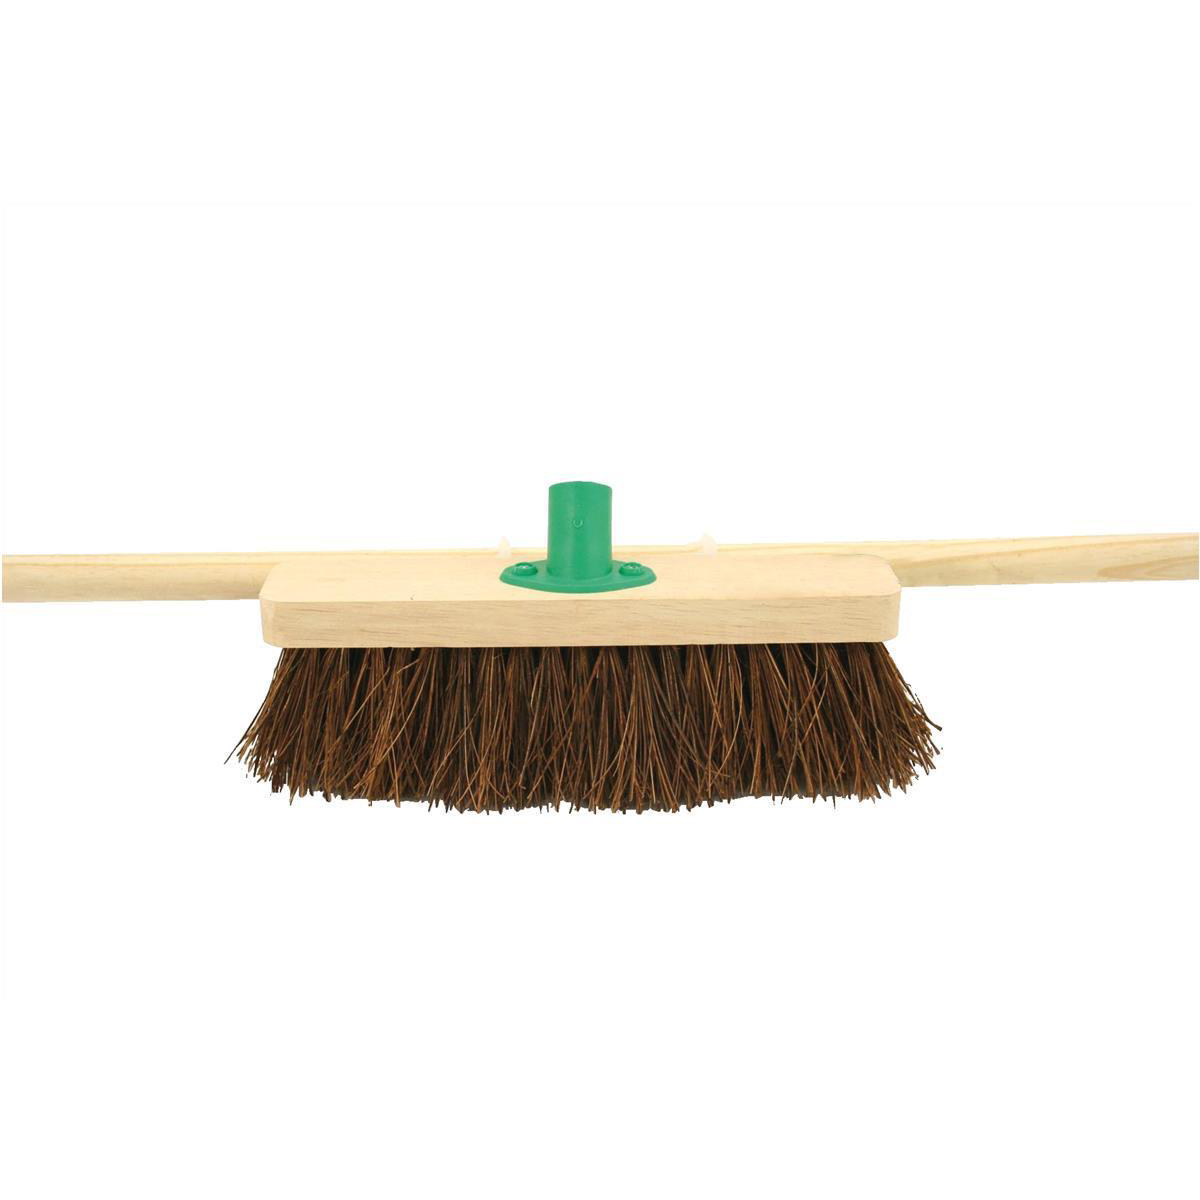 Brooms Bentley 24inch Stiff Bassine Broom with Handle & Bracket Ref SPC/H12BKT/C4